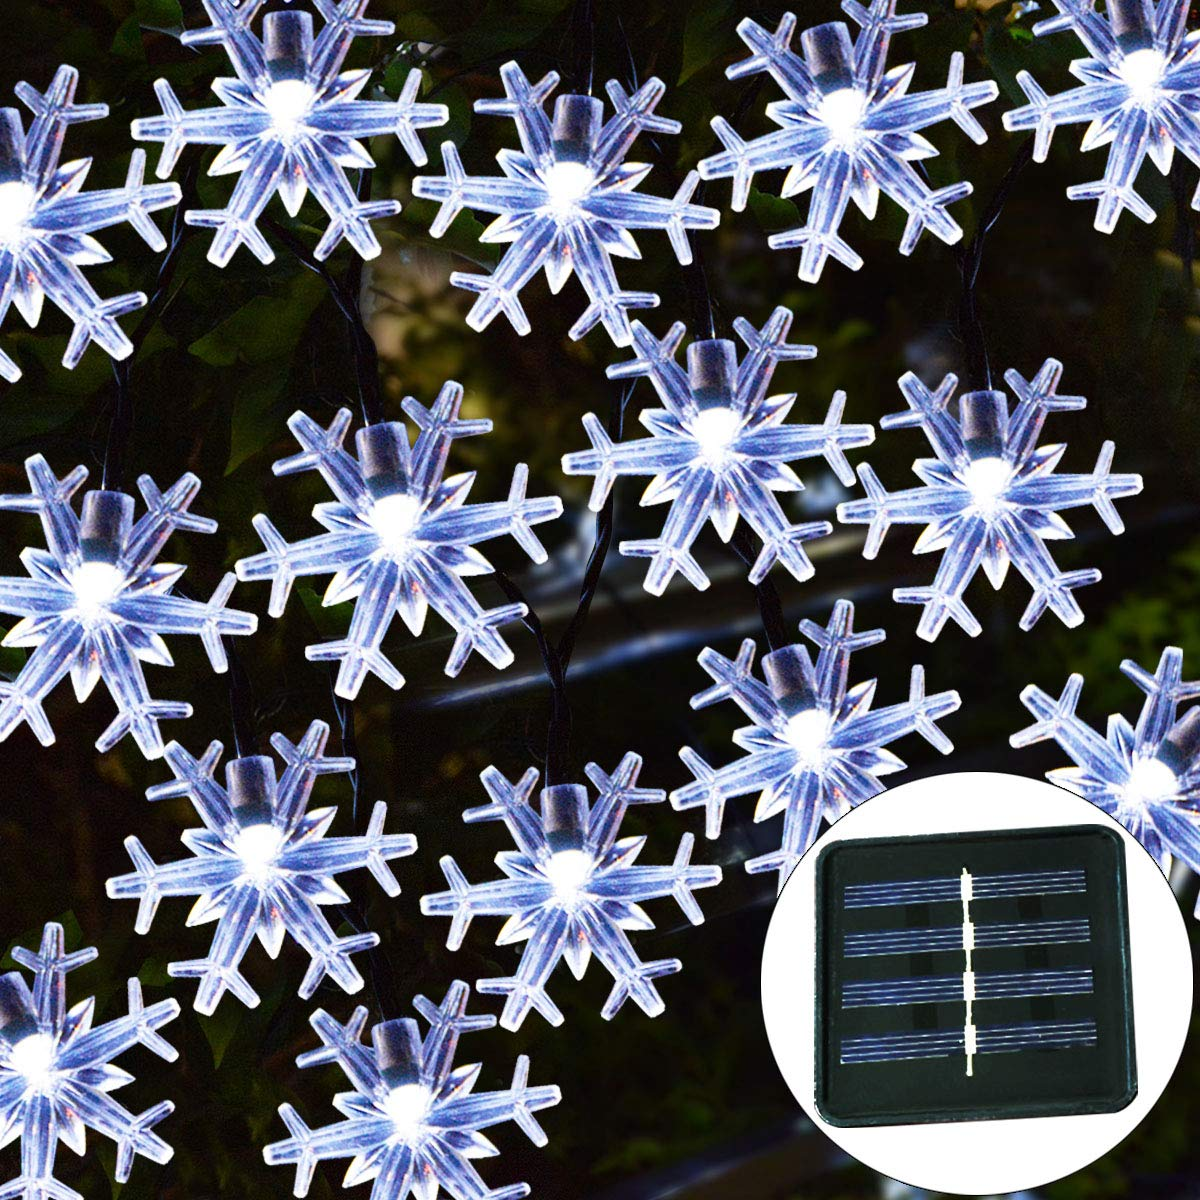 Windpnn Solar Christmas Lights Outdoor,50LED 30.6ft Waterproof Solar Christmas Snowflake String Lights